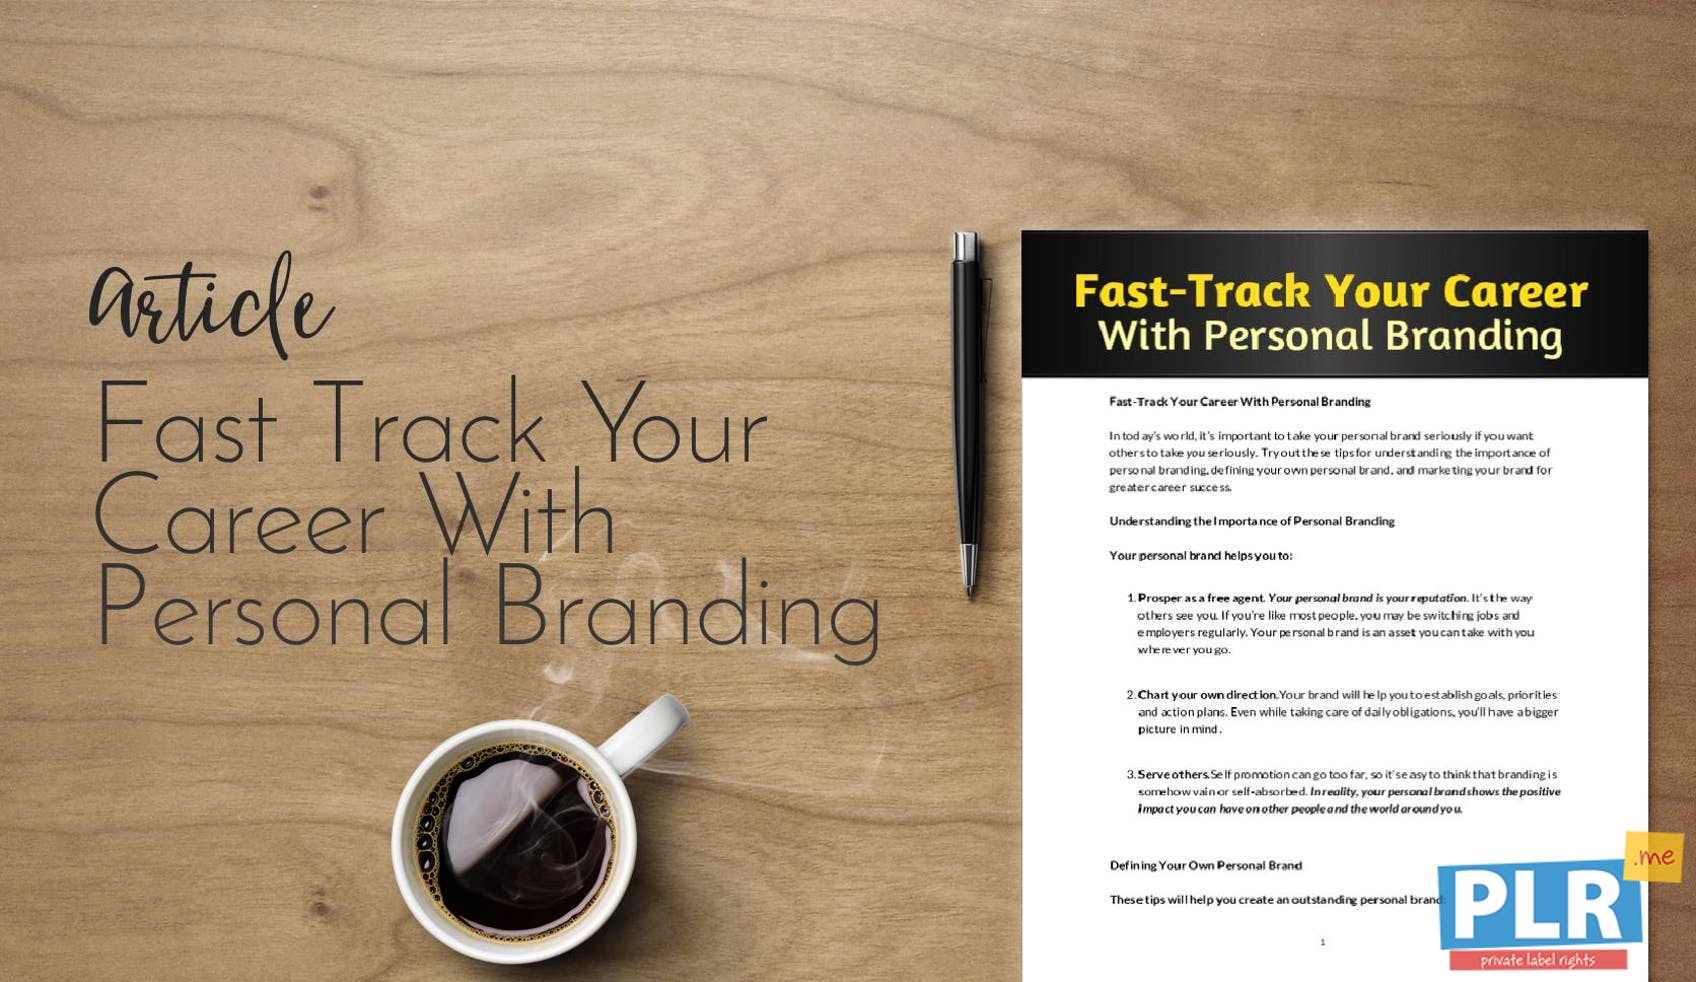 Fast Track Your Career With Personal Branding